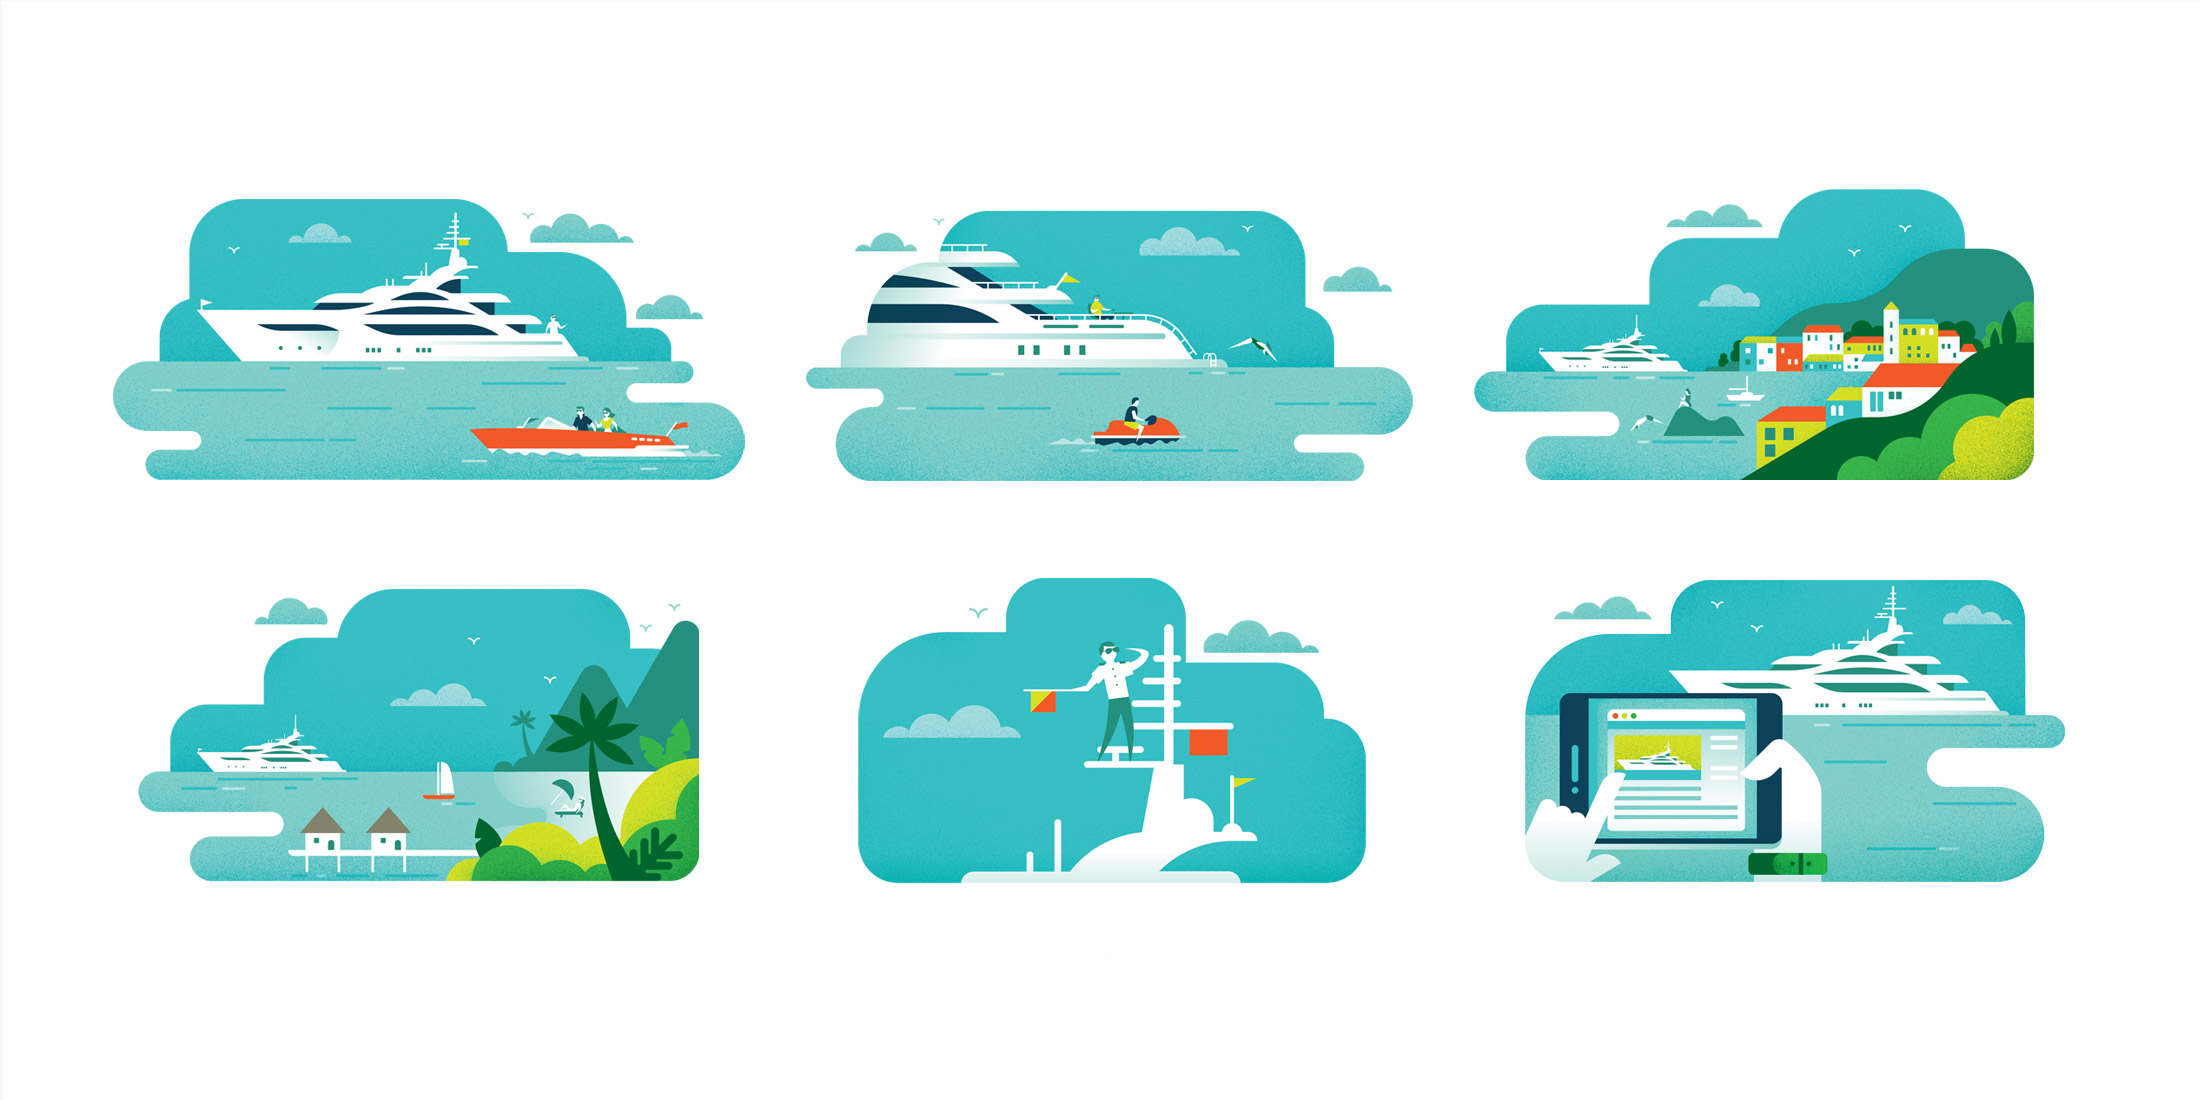 Camper & Nicholsons Sea+I Magazine: Illustrations by Parko Polo